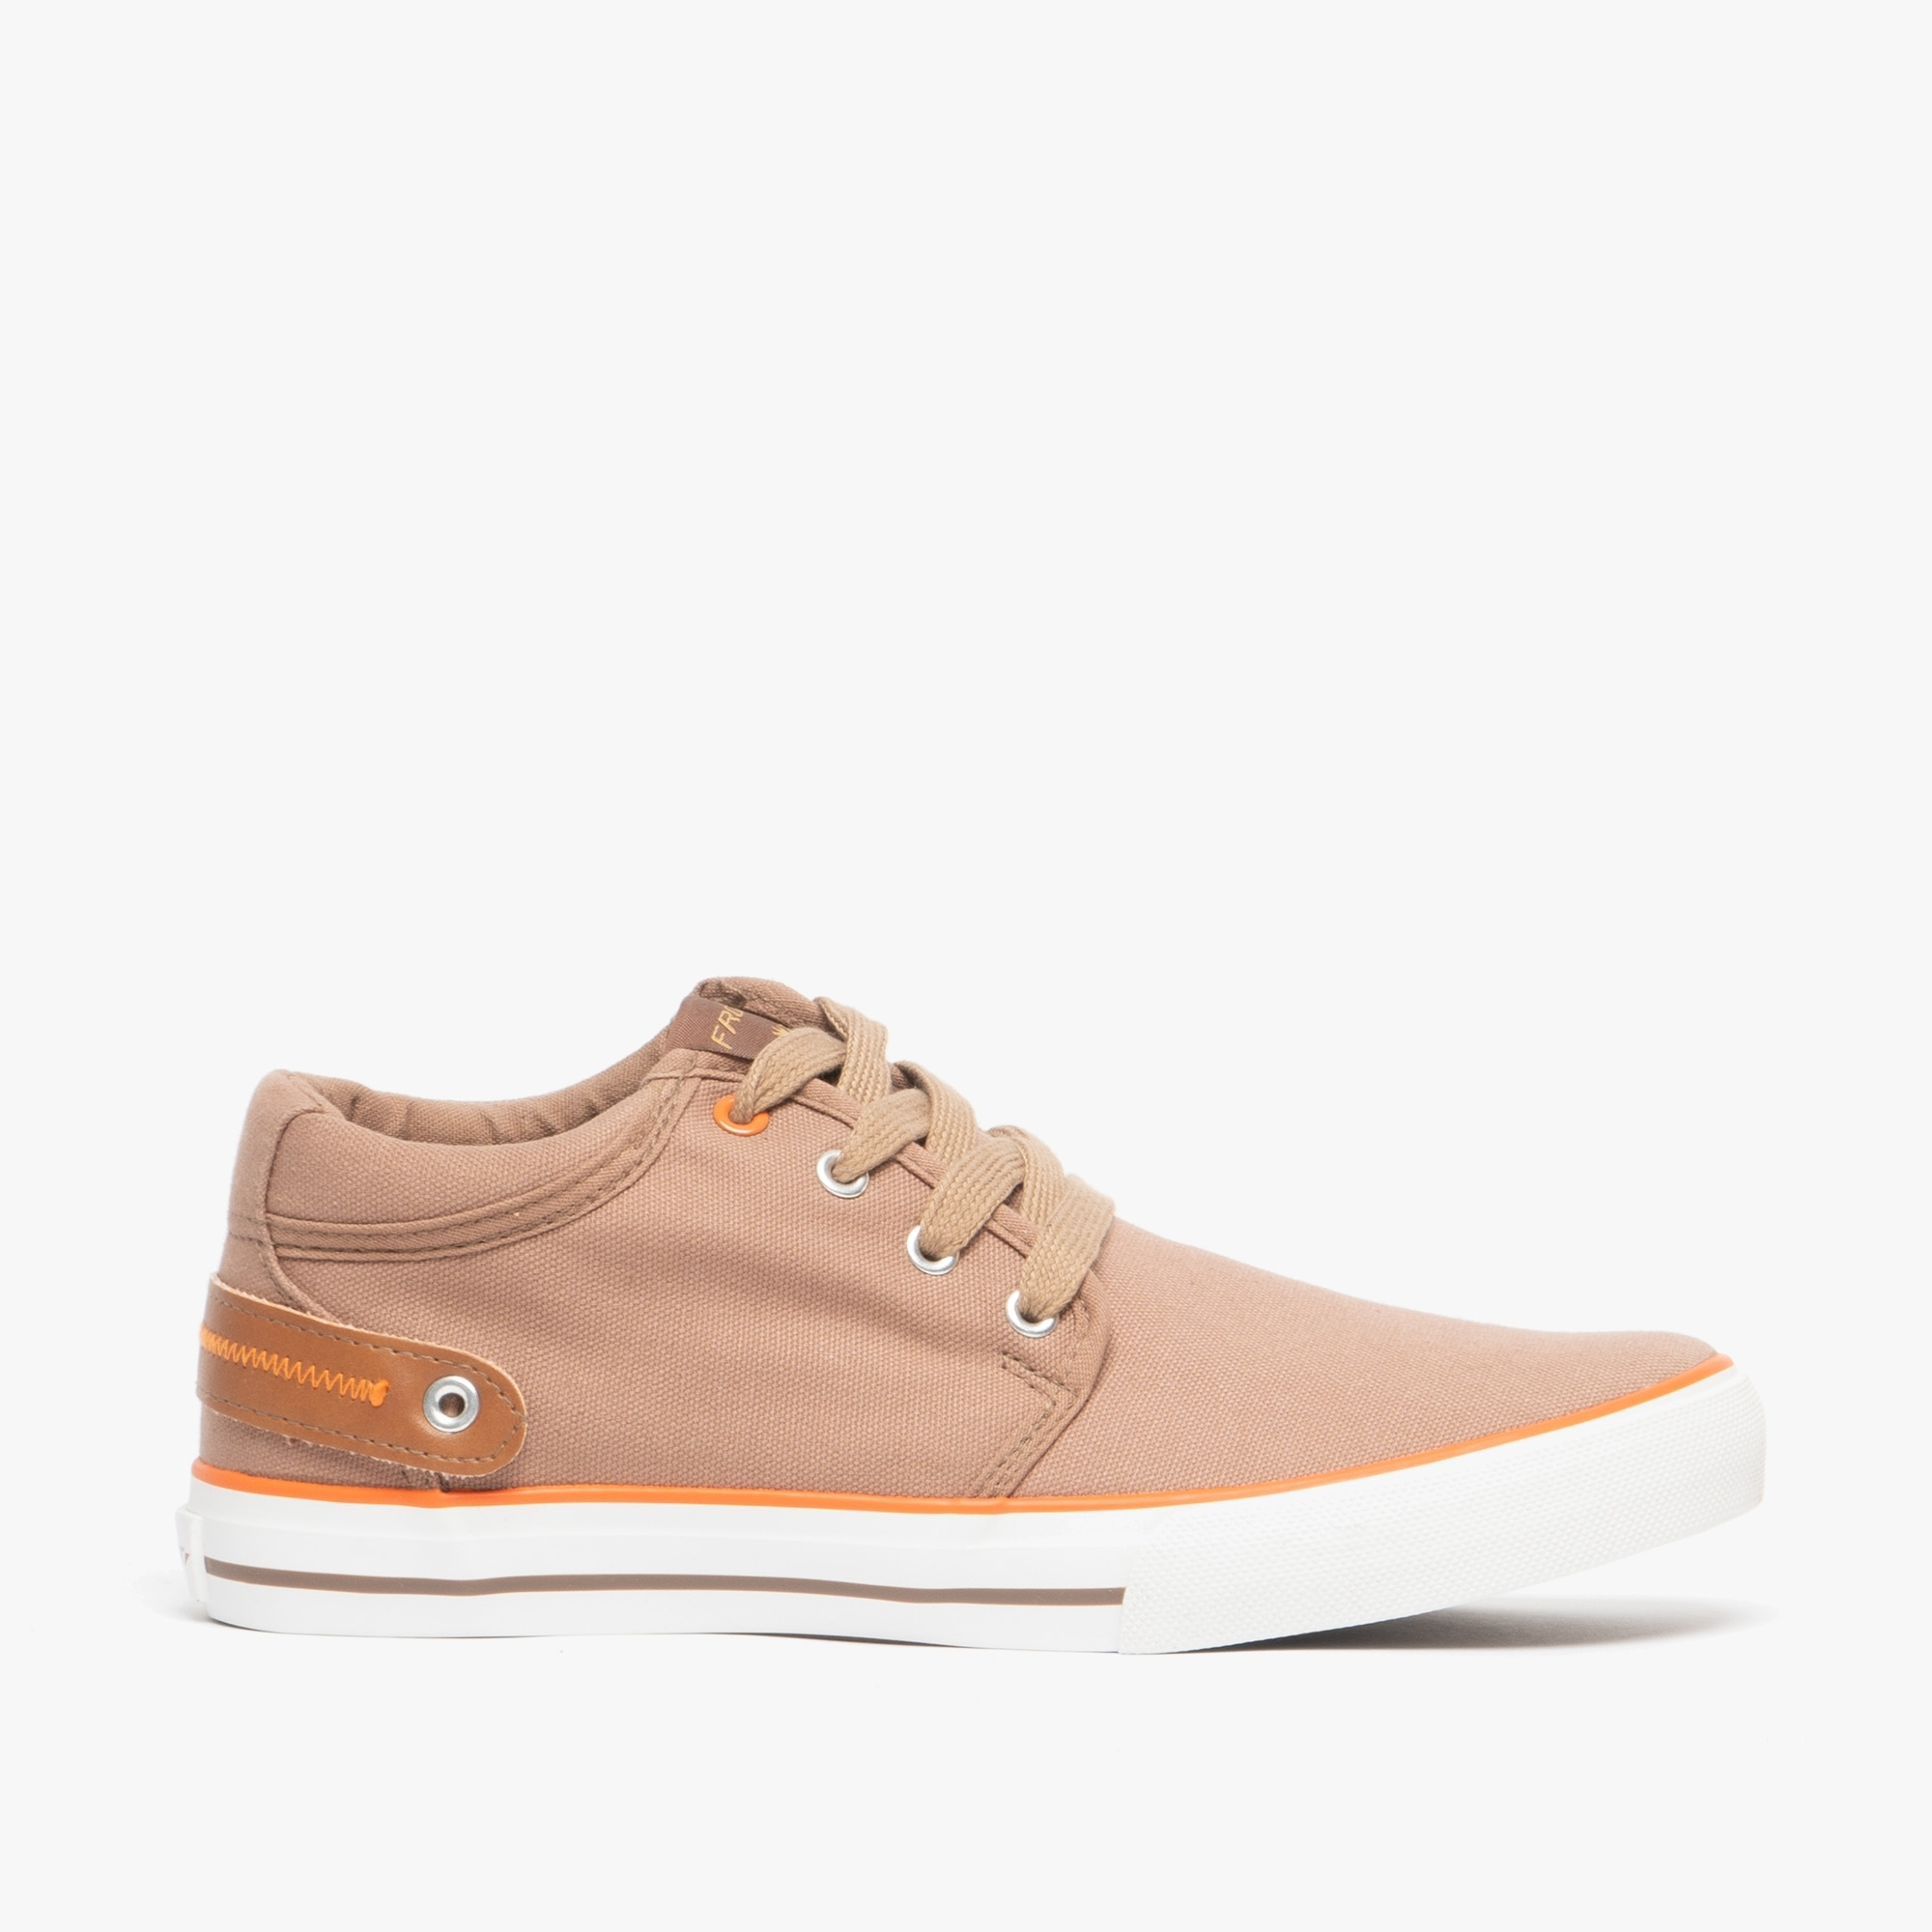 Front REEF Mens Soft Canvas Lace-Up